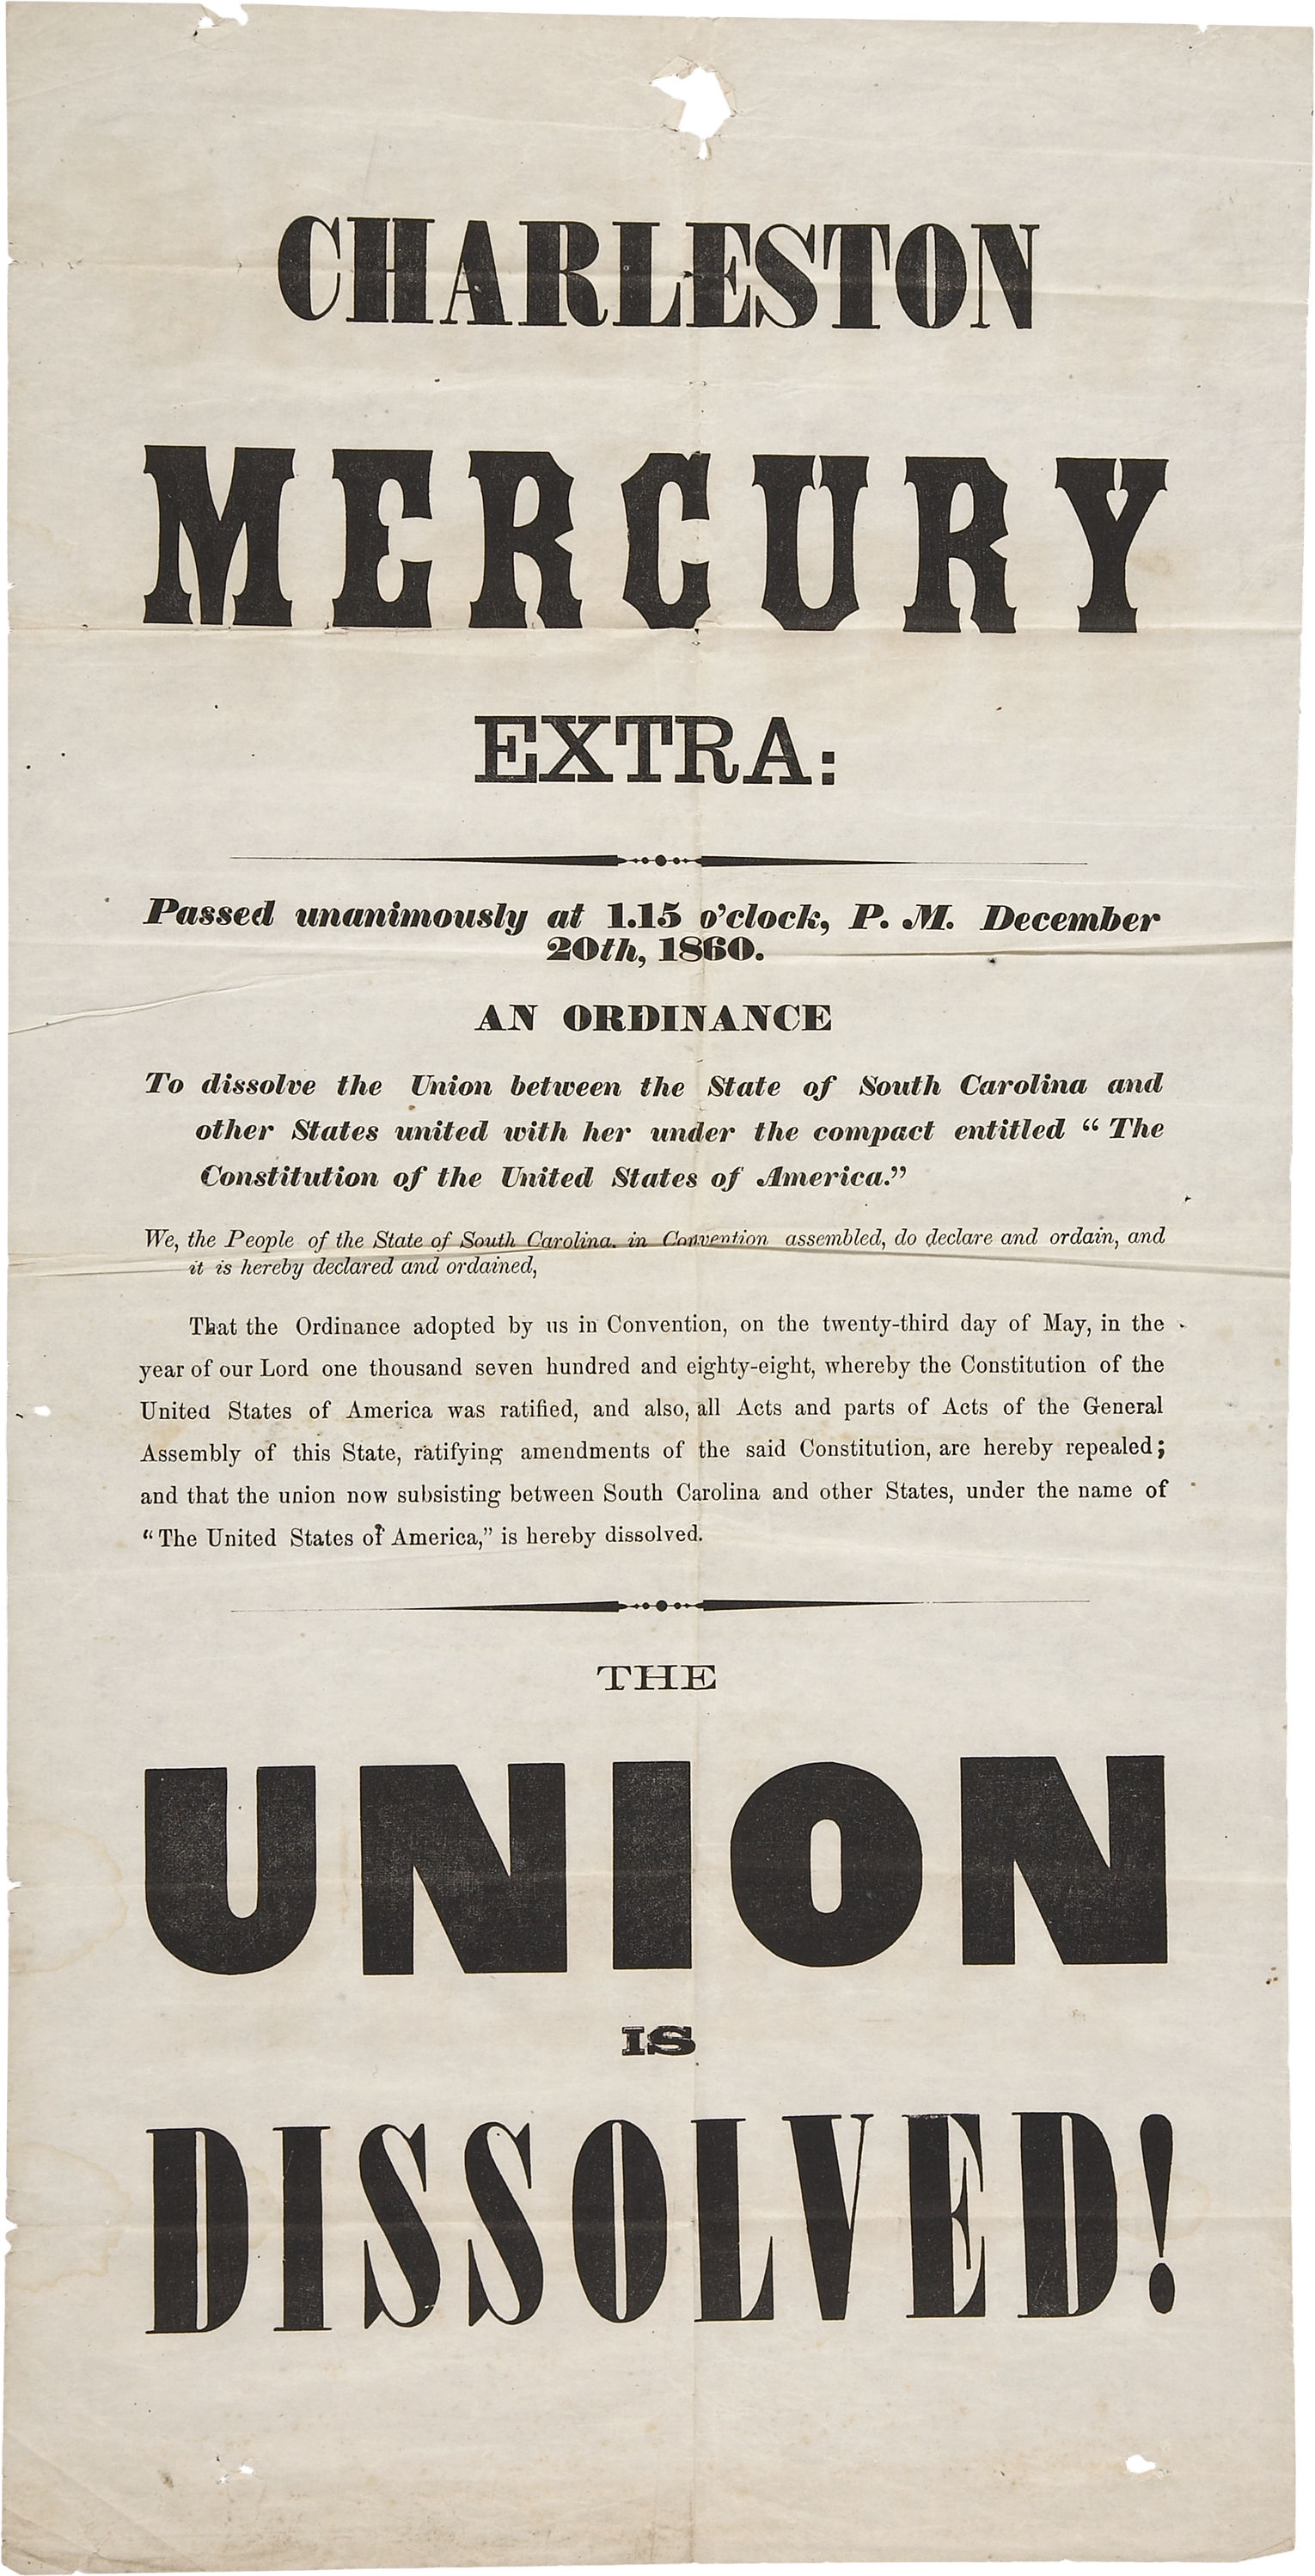 a history of the ordinance to dissolve the union in the united states